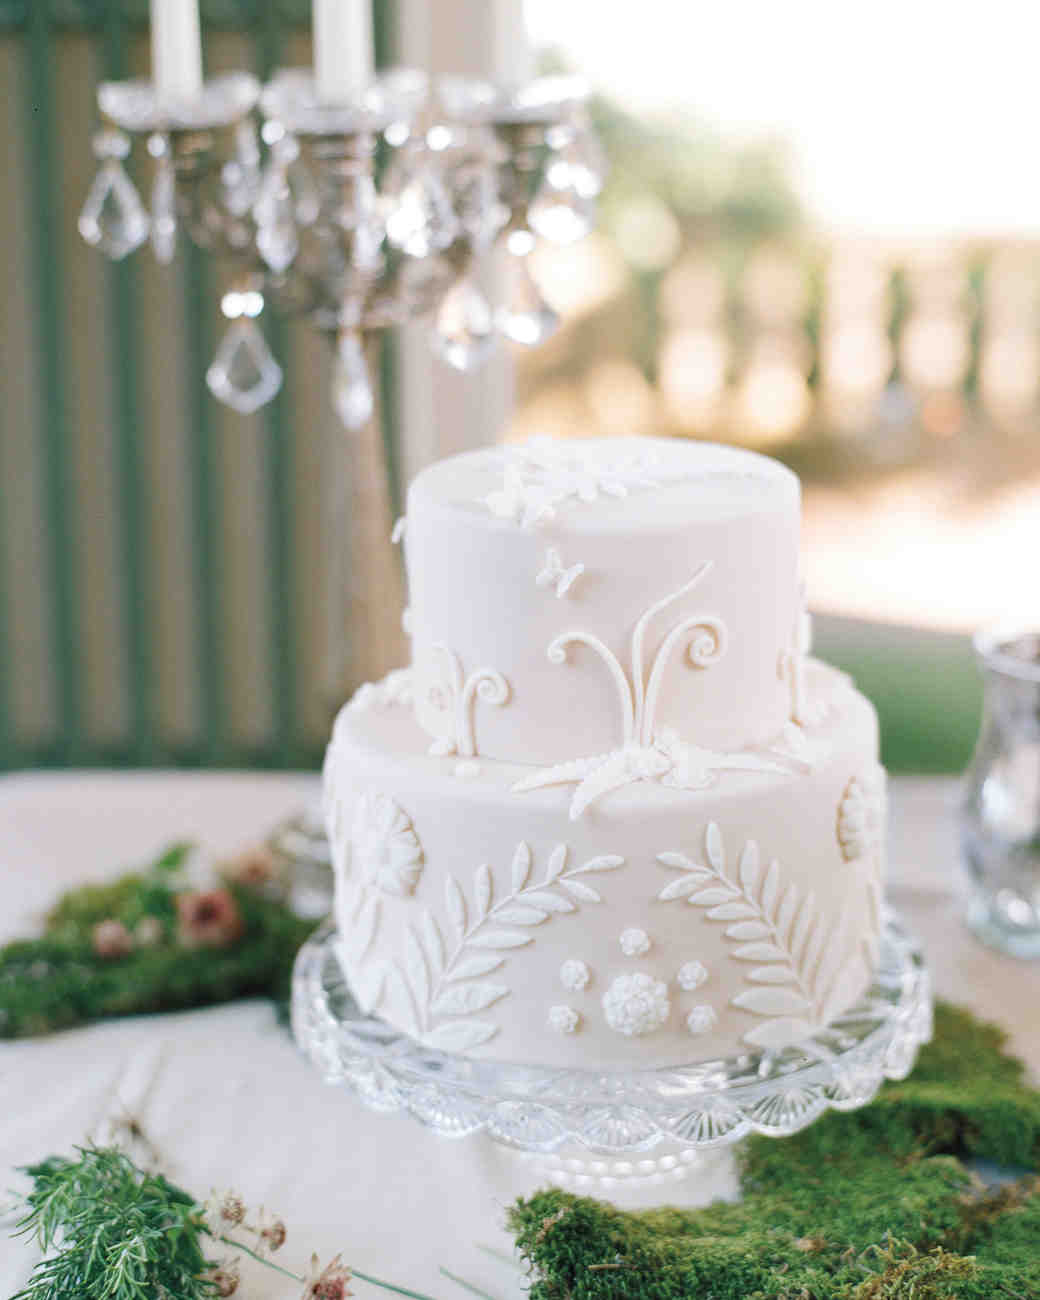 dress-inspired wedding cake